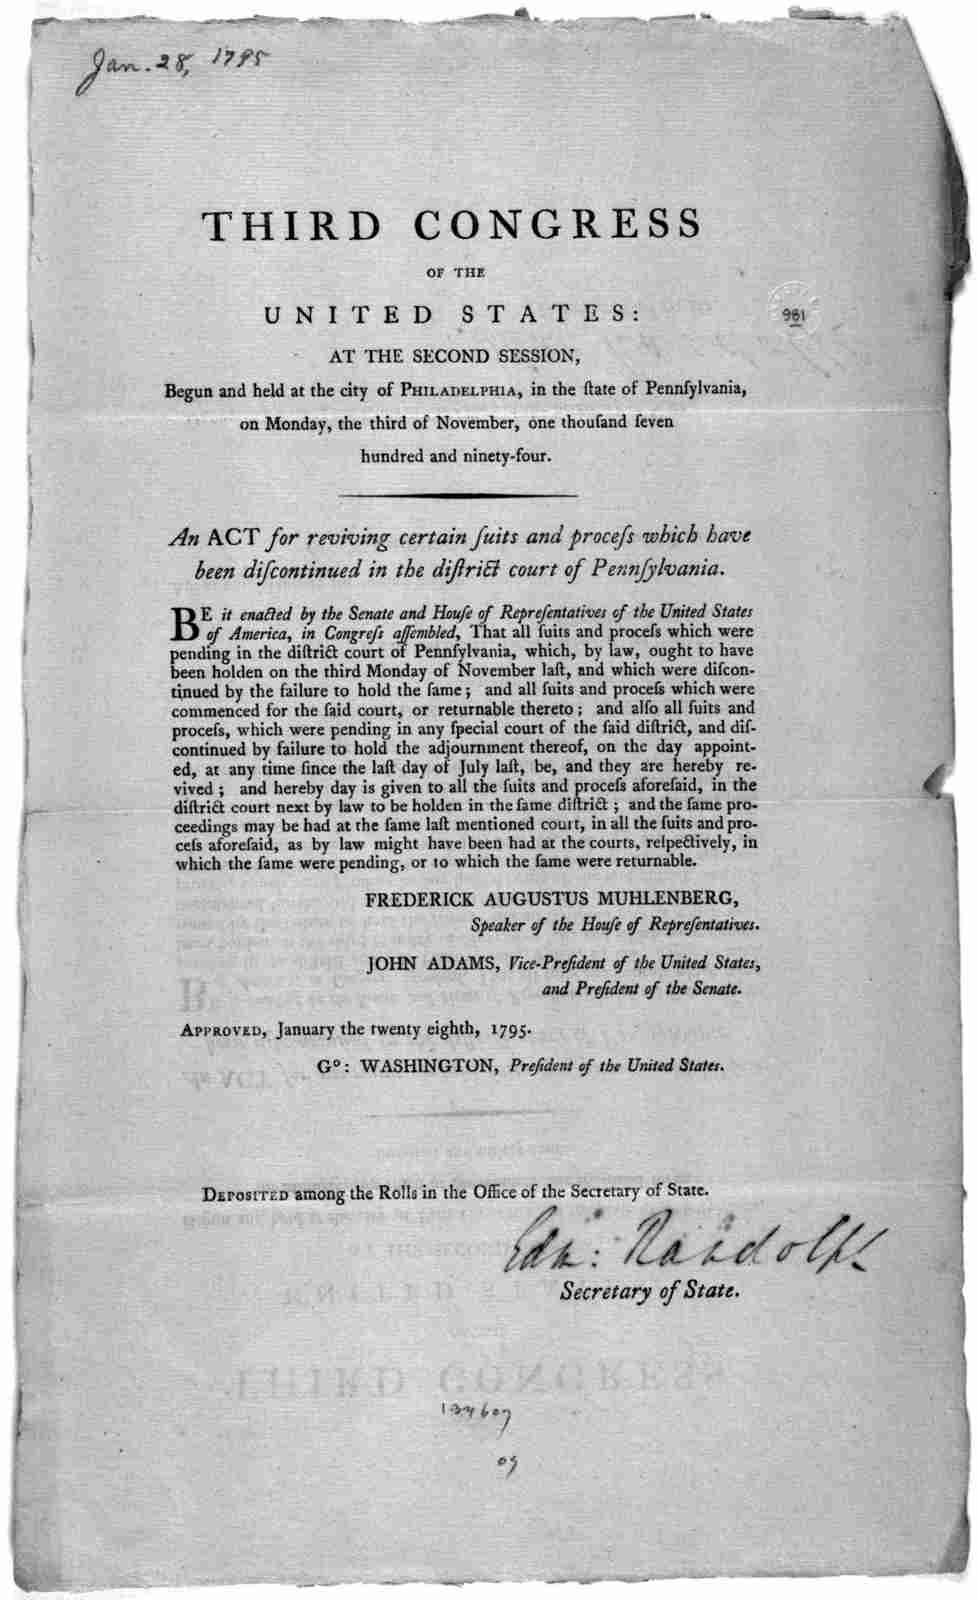 ... An act for reviving certain suits and process which have been discontinued in the district court of Pennsylvania. [Philadelphia: Printed by Francis Childs, 1795].